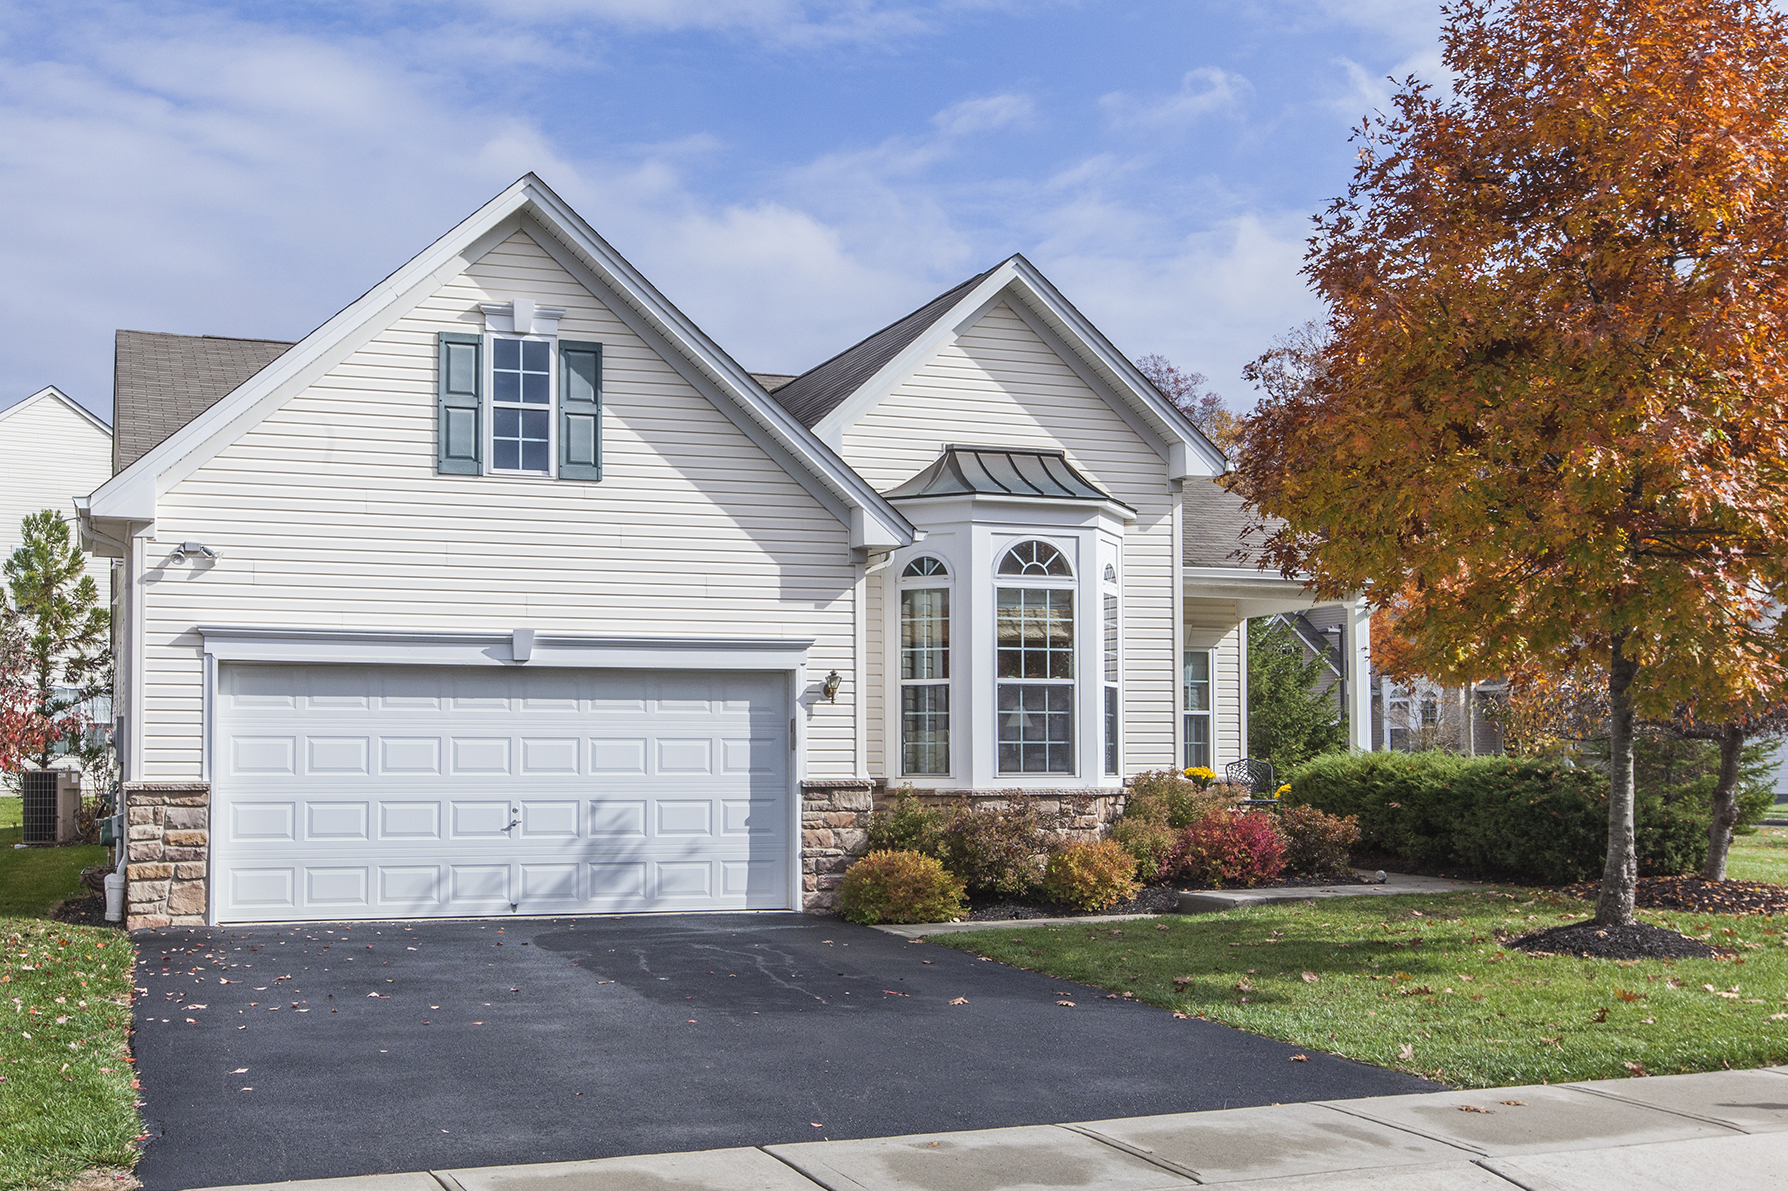 Property For Sale at A 55-Plus Community Nestled Amid Preserved Land - Hopewell Township